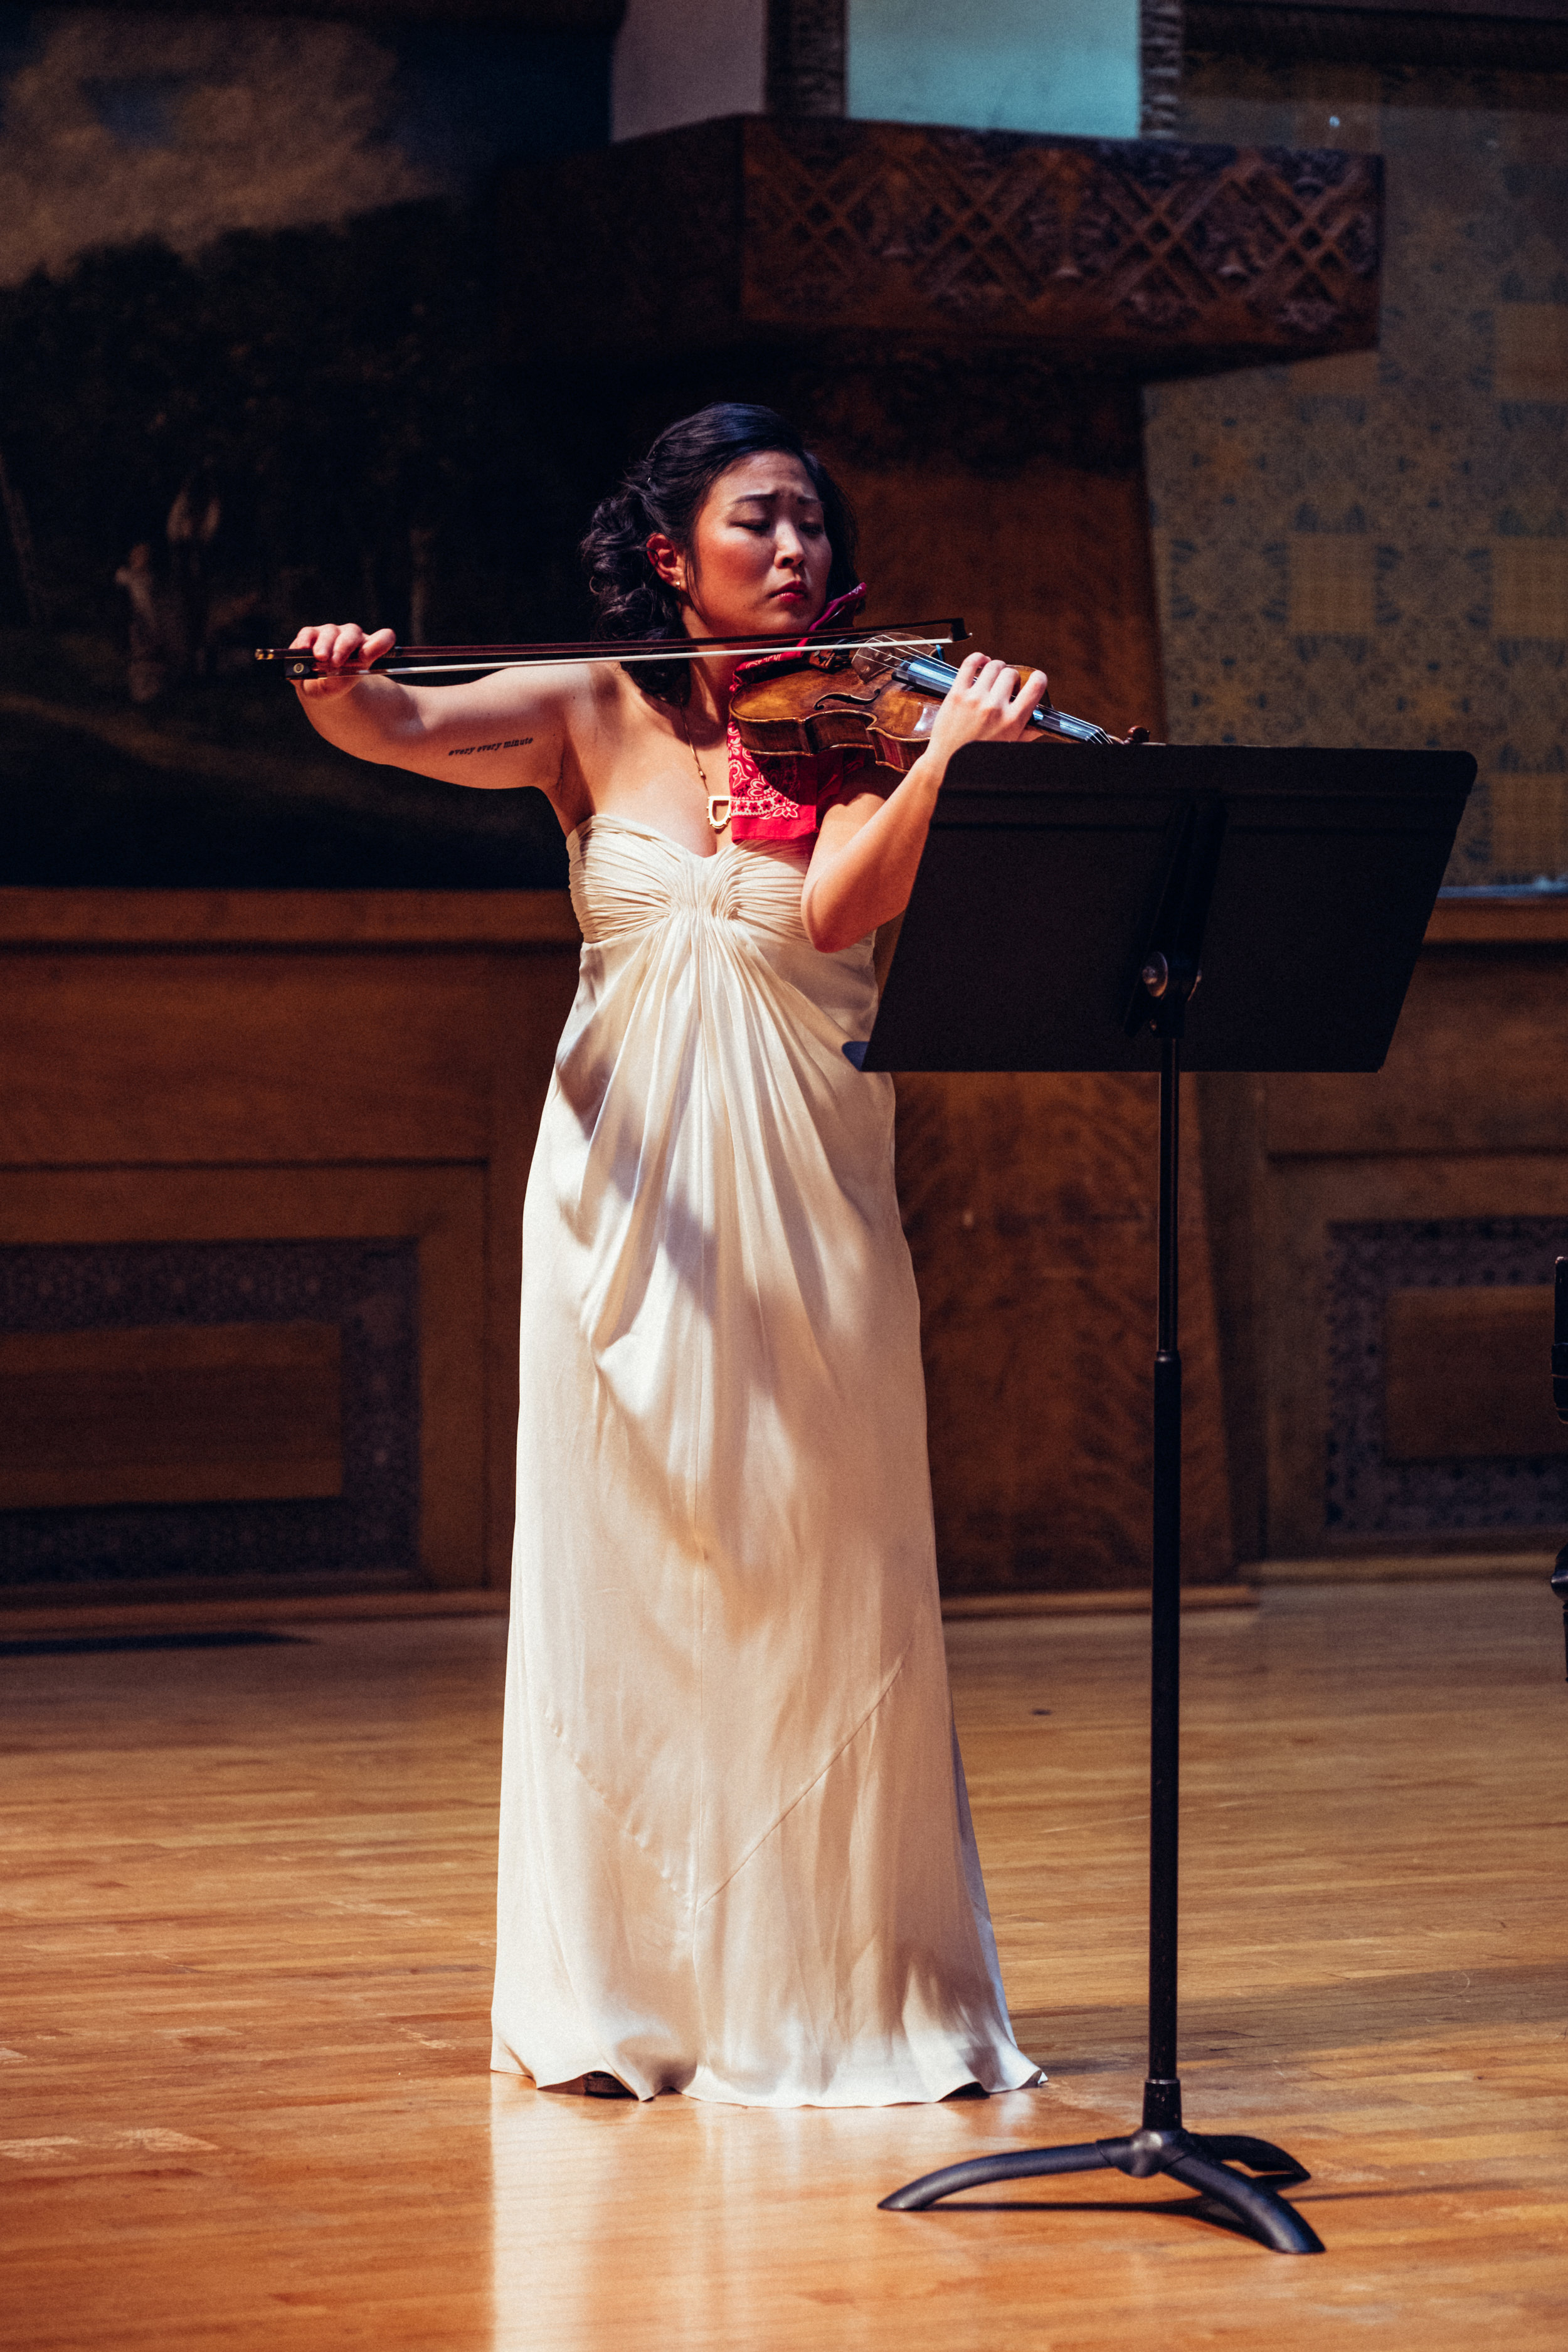 """Kathryn Satoh is impassioned by genuine and purposeful human connectivity, and uses these characteristics to drive her artistic career. Ms. Satoh is co-founder and violinist of her primary ensemble Bow & Hammer, curating new performance series which affirm the relevance of classical music in mainstream social interaction. Through their original concert series, """"Industry Night"""" and """"Élevé"""", BH has cultivated close collaborative relationships with other artists and small businesses and has held local and international residencies (Italy, Canada) to develop their communal mission. A collaborator to the core, she sees chamber music as a timeless manifestation of social progress.  Ms. Satoh jumps at any opportunity to alter her perception of being a musician. Trained as a vocalist and violinist, she has worked with theaters, opera companies, composers, poets, actors, and multi-disciplinary companies to premiere, preserve, or adapt works of diverse genres ranging from cabaret bar songs to large scale symphonic orchestral repertoire. These endeavors have put her on stage with Civic Orchestra of Chicago, Grant Park Music Festival Chorus, Third Eye Theater Ensemble, and Mozawa, among other artists and companies.  Highly regarding her value as a communicator and advocate for the arts, Ms. Satoh is an active teaching artist. She holds faculty and administrative positions at Naperville School of Performing Arts, and maintains a private violin studio throughout Chicagoland. With Bow & Hammer, she acts as a guest lecturer and collaboration coach, and has individually adjudicated various festivals and competitions.  Ms. Satoh holds two Bachelor of Music degrees with distinction from the University of Colorado in Violin and Voice Performance under the teaching of Lina Bahn (Corigliano Quartet) and Patrick Mason. In the rare spare moment, she loves to read/watch memoirs, eat home-cooked meals (made by herself or others; she is non-discriminant), be outdoors, and embark on adventures"""